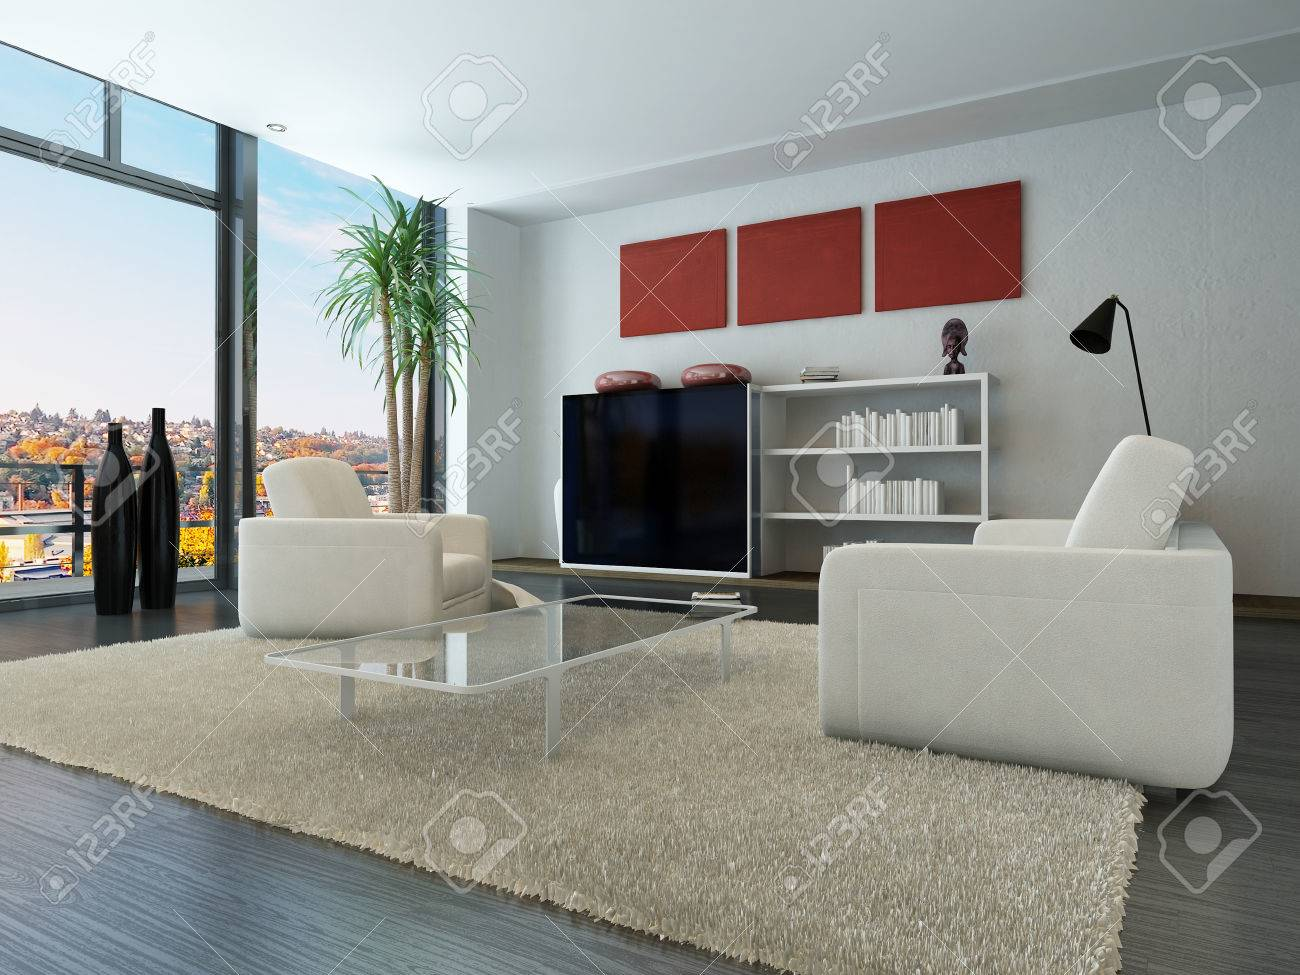 Trendy Living Room Modern Loft Interior With Trendy Living Room Furniture Stock Photo